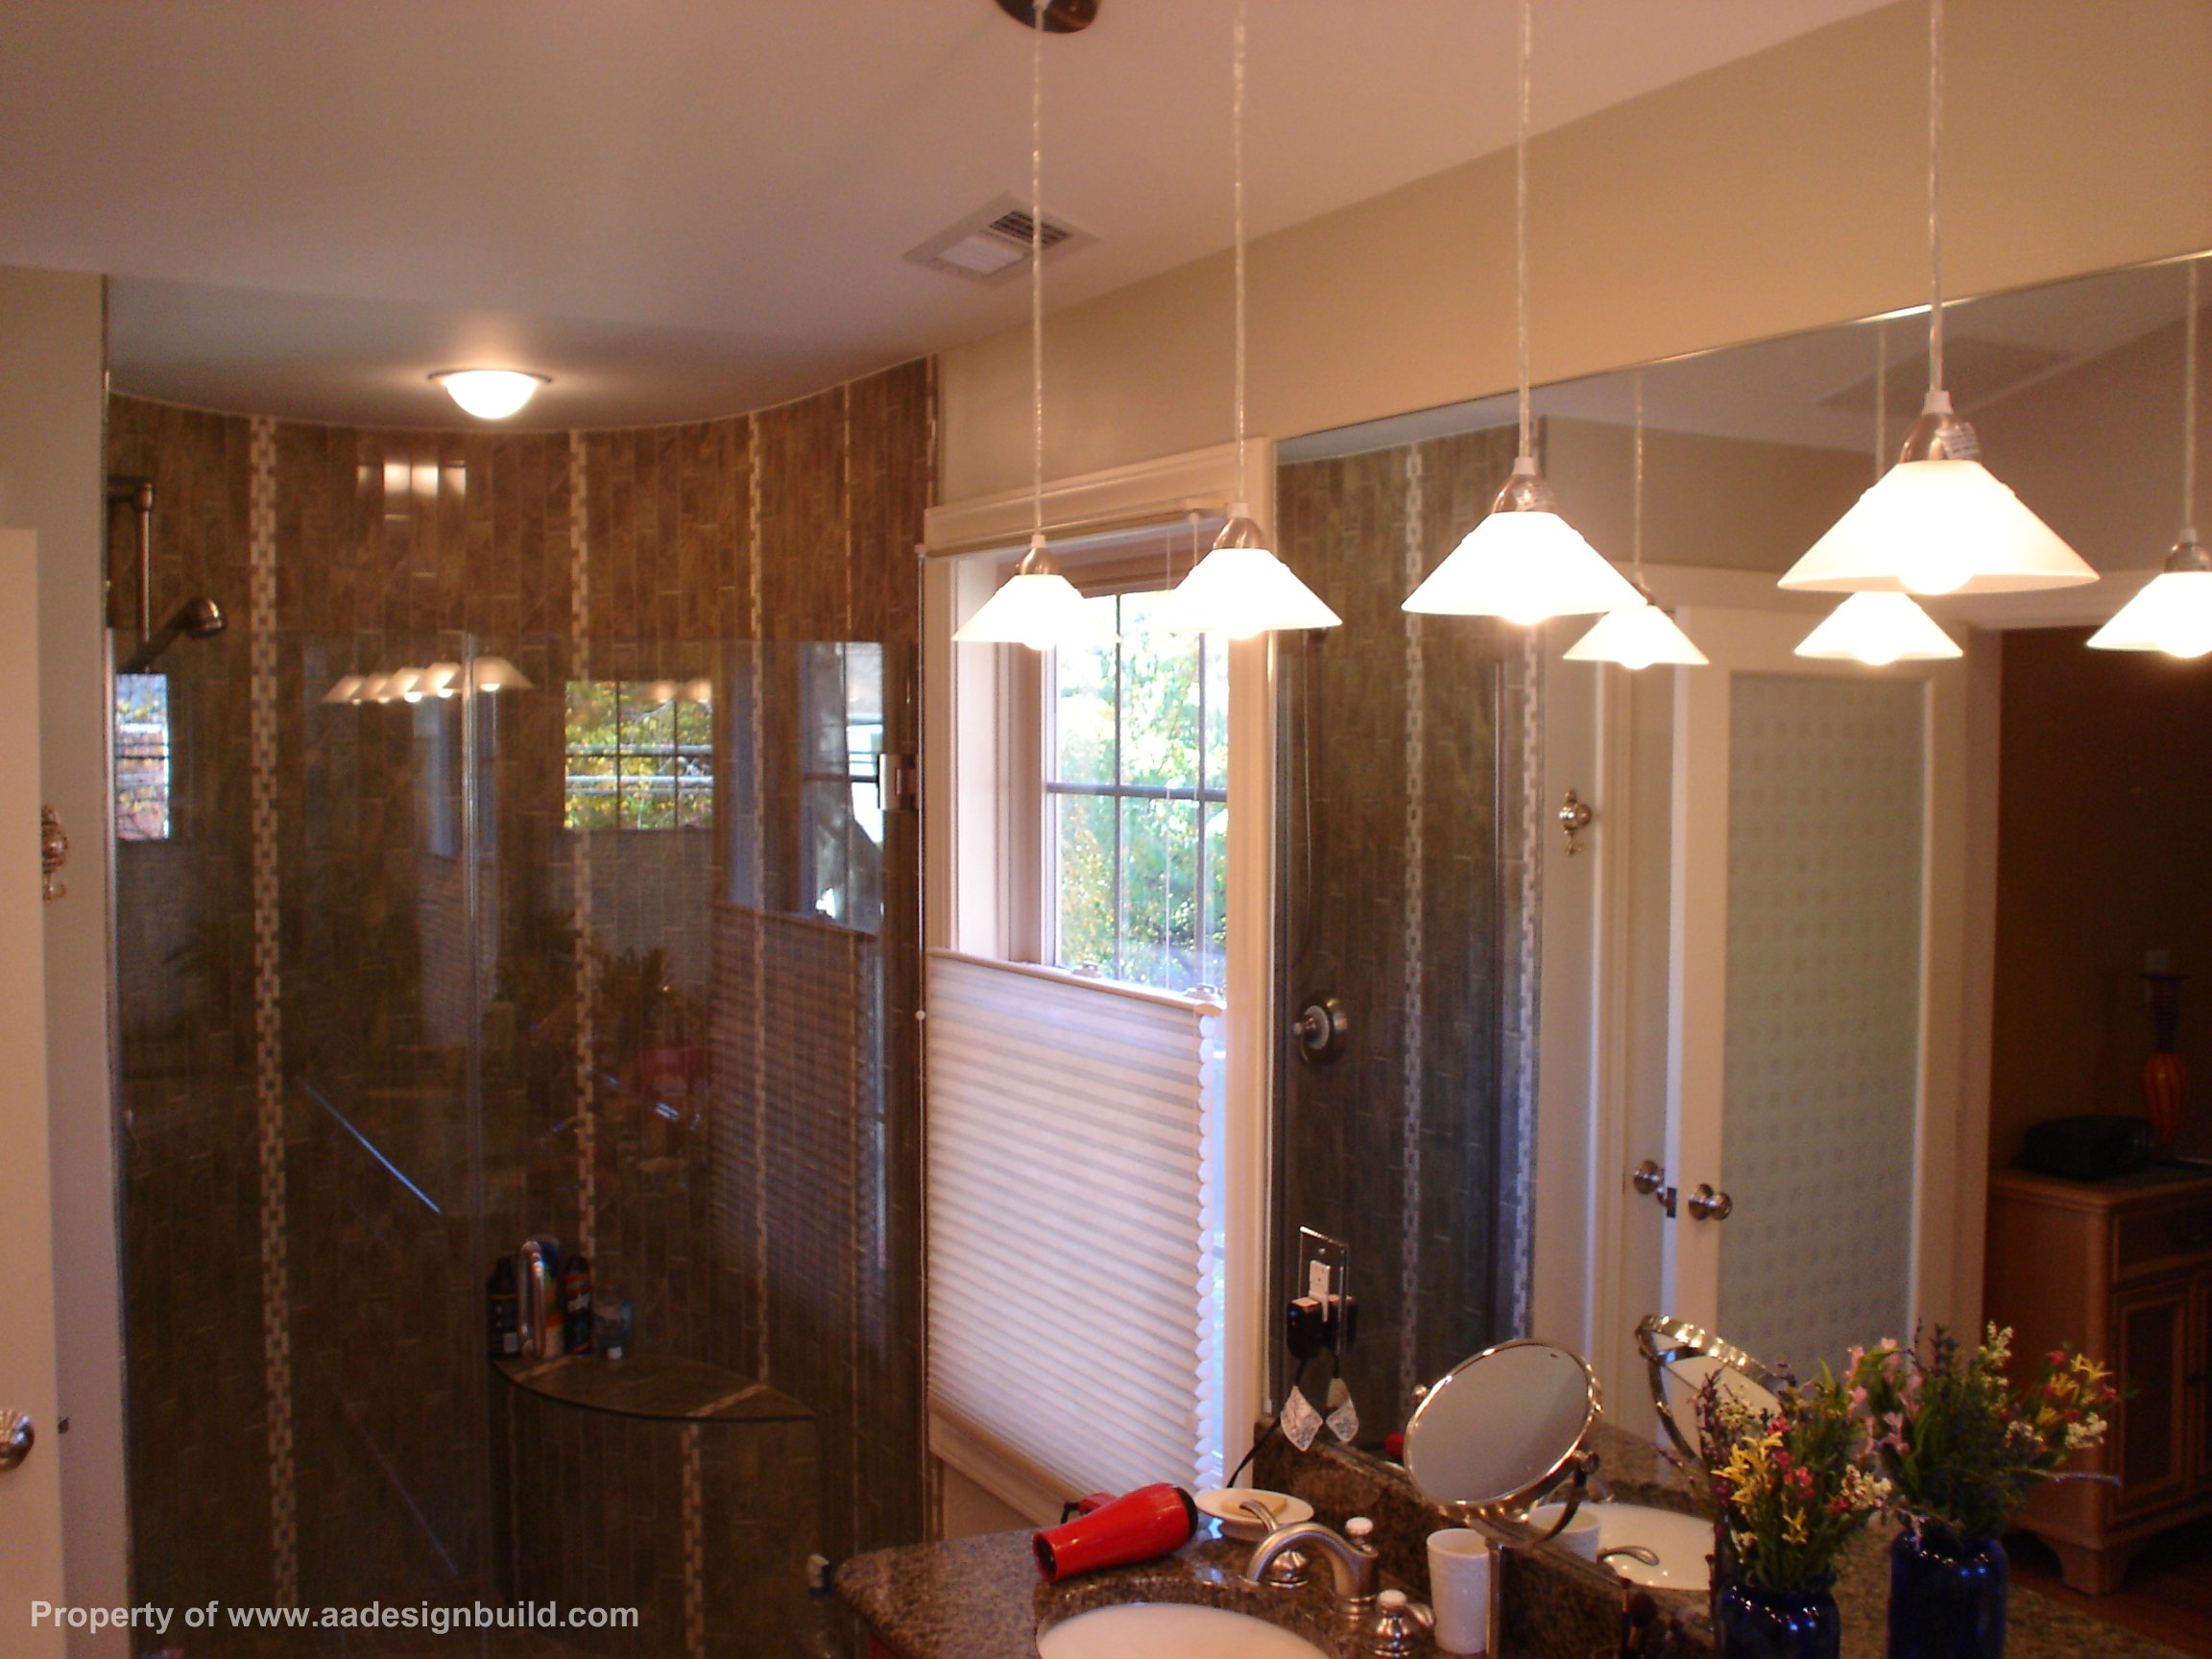 www.aadesignbuild.com, Master Bathroom Custom Design and ...